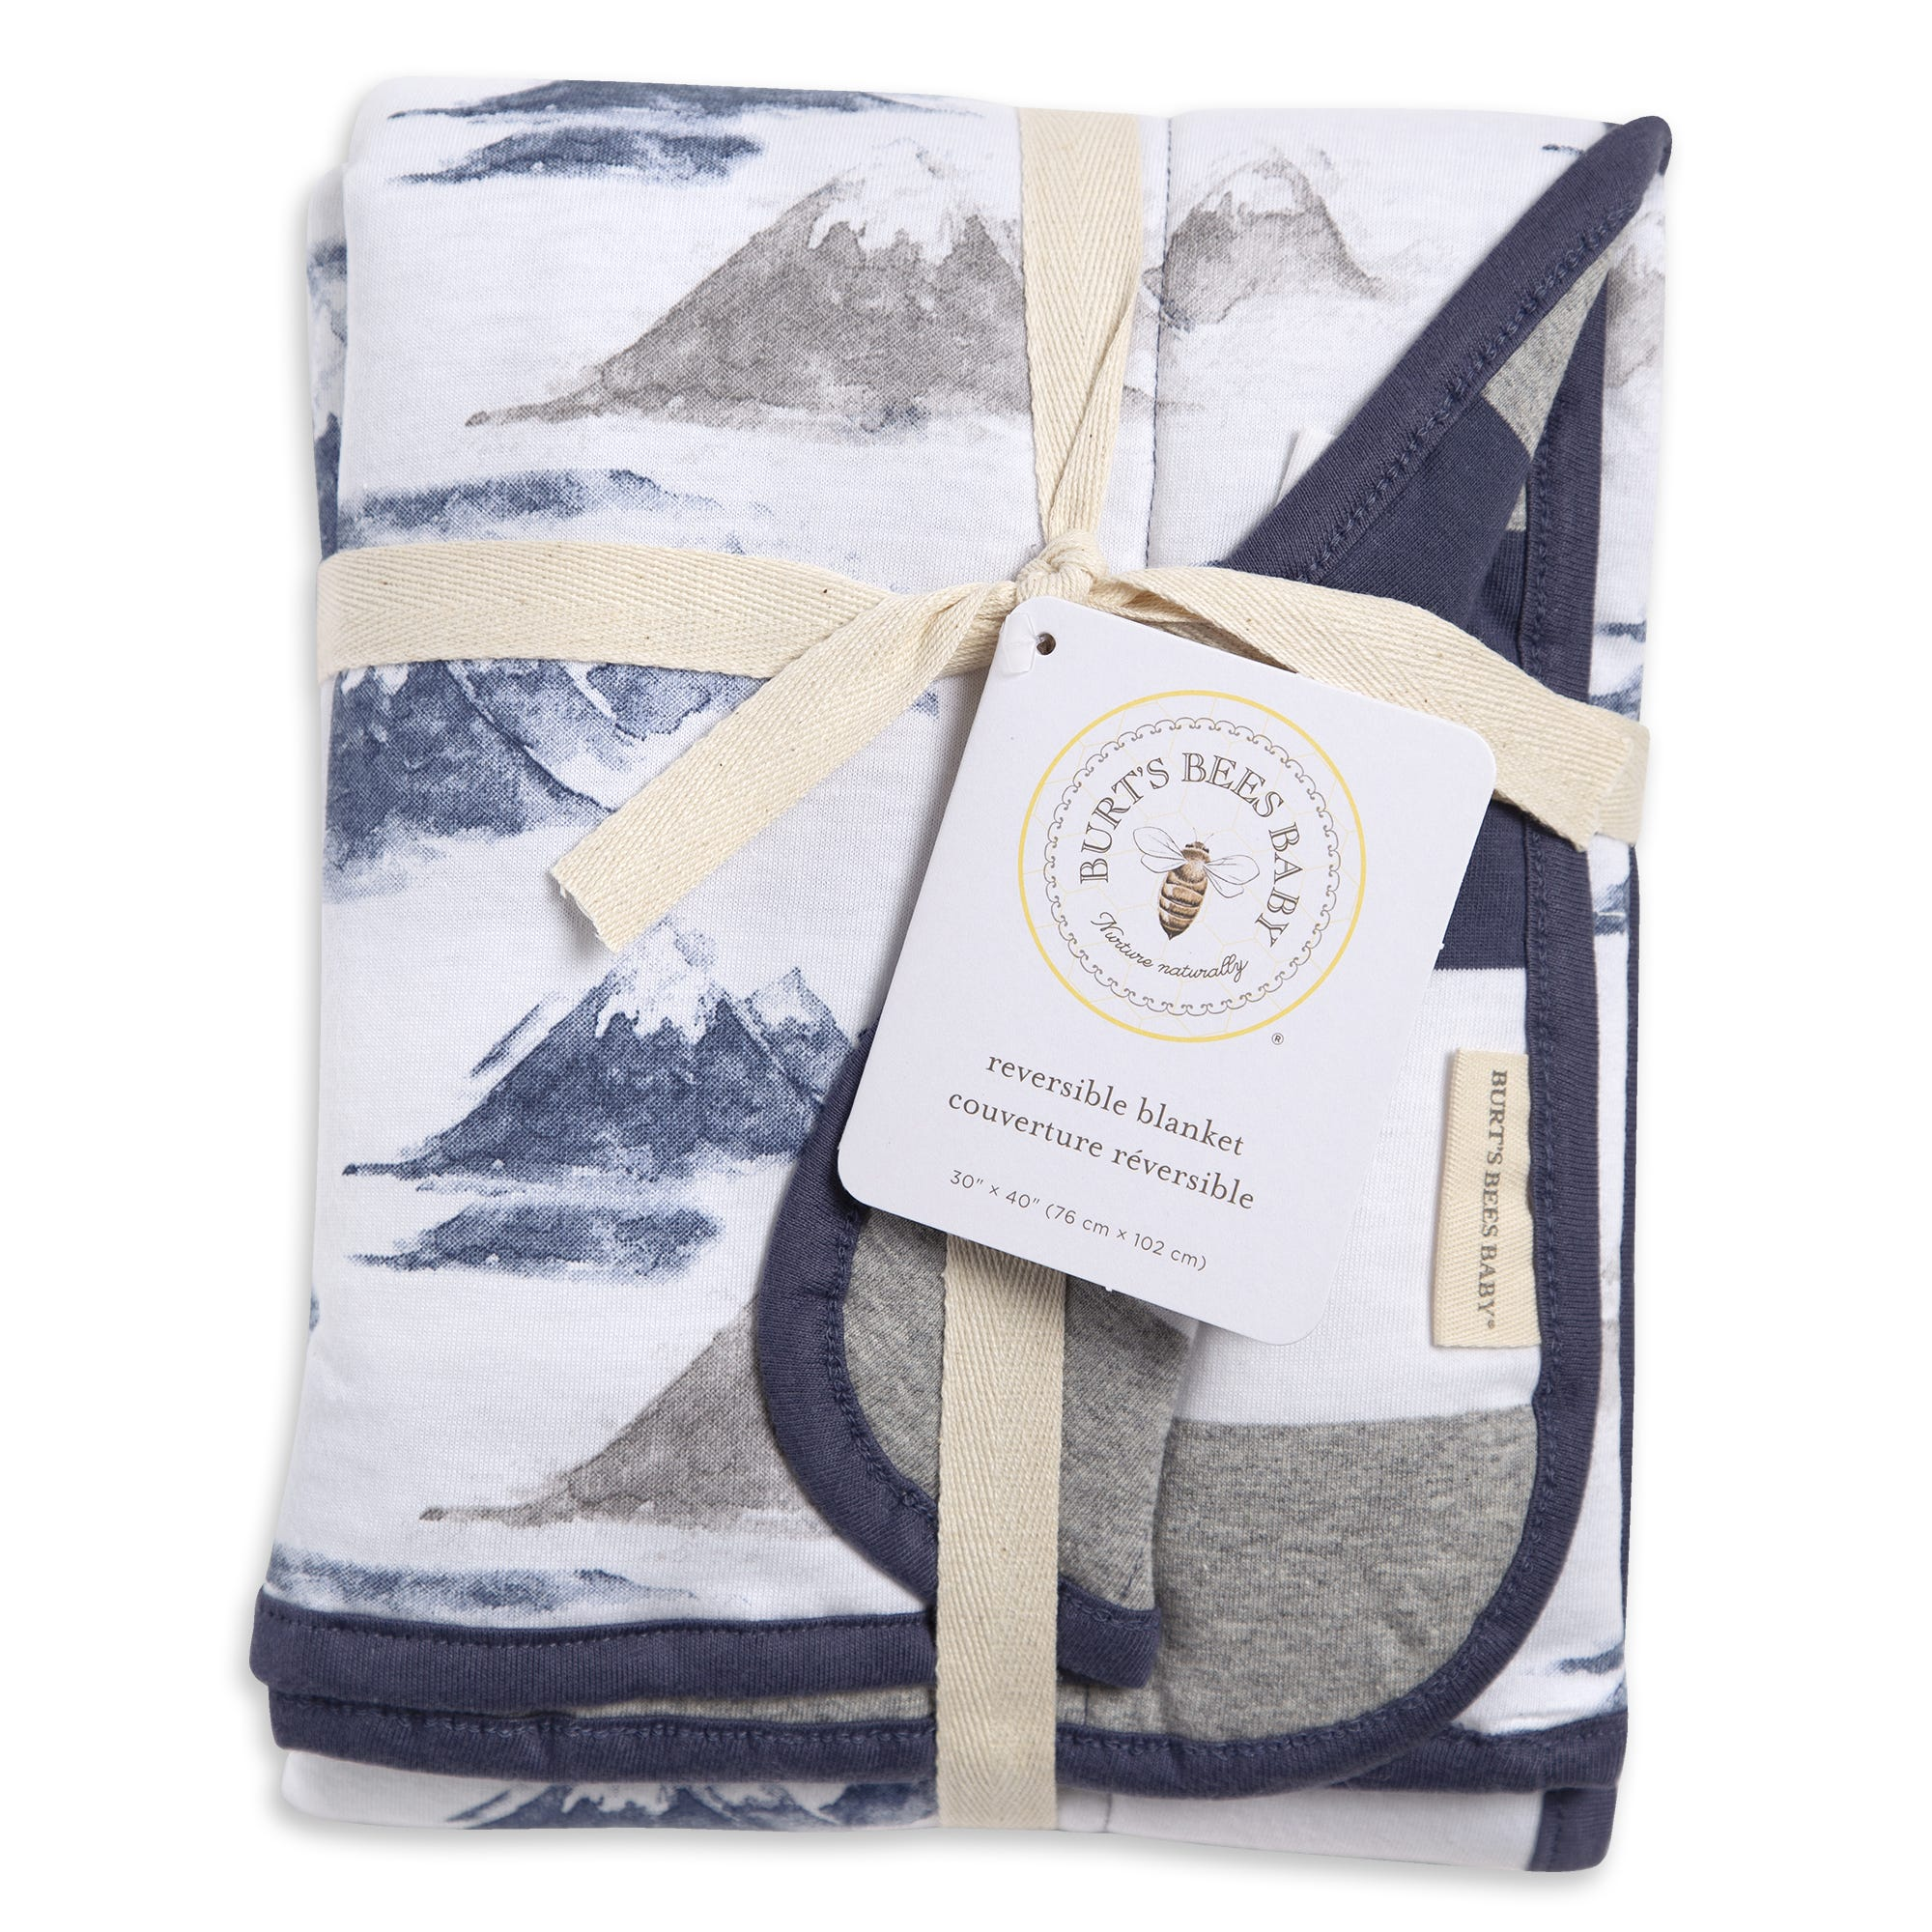 Watercolor Mountains Reversible Soft Baby Blanket Made With Organic Cotton